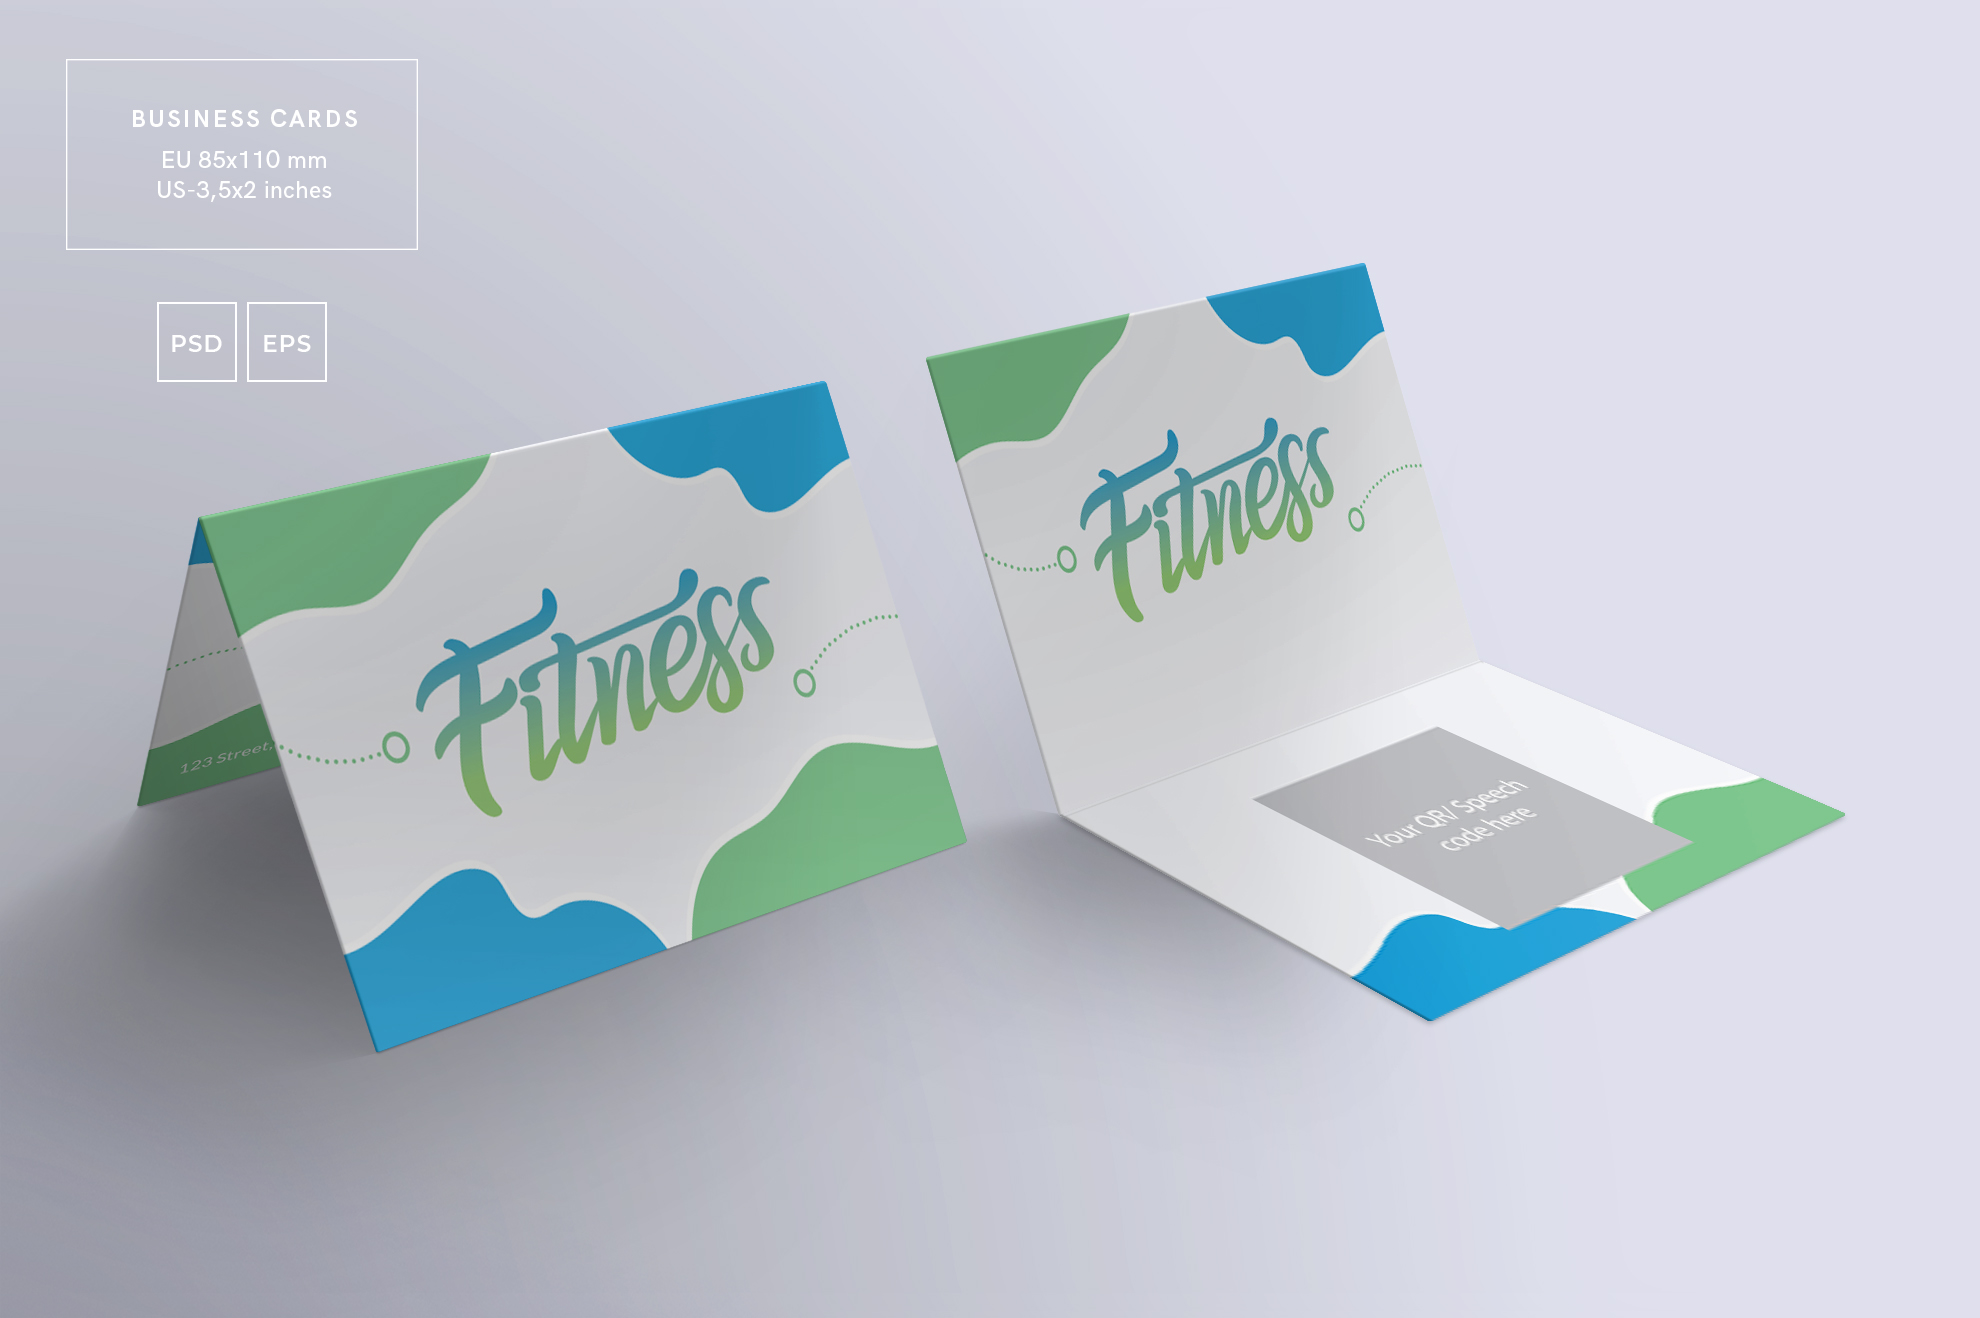 Fitness Training Gym Workout Design Templates Bundle